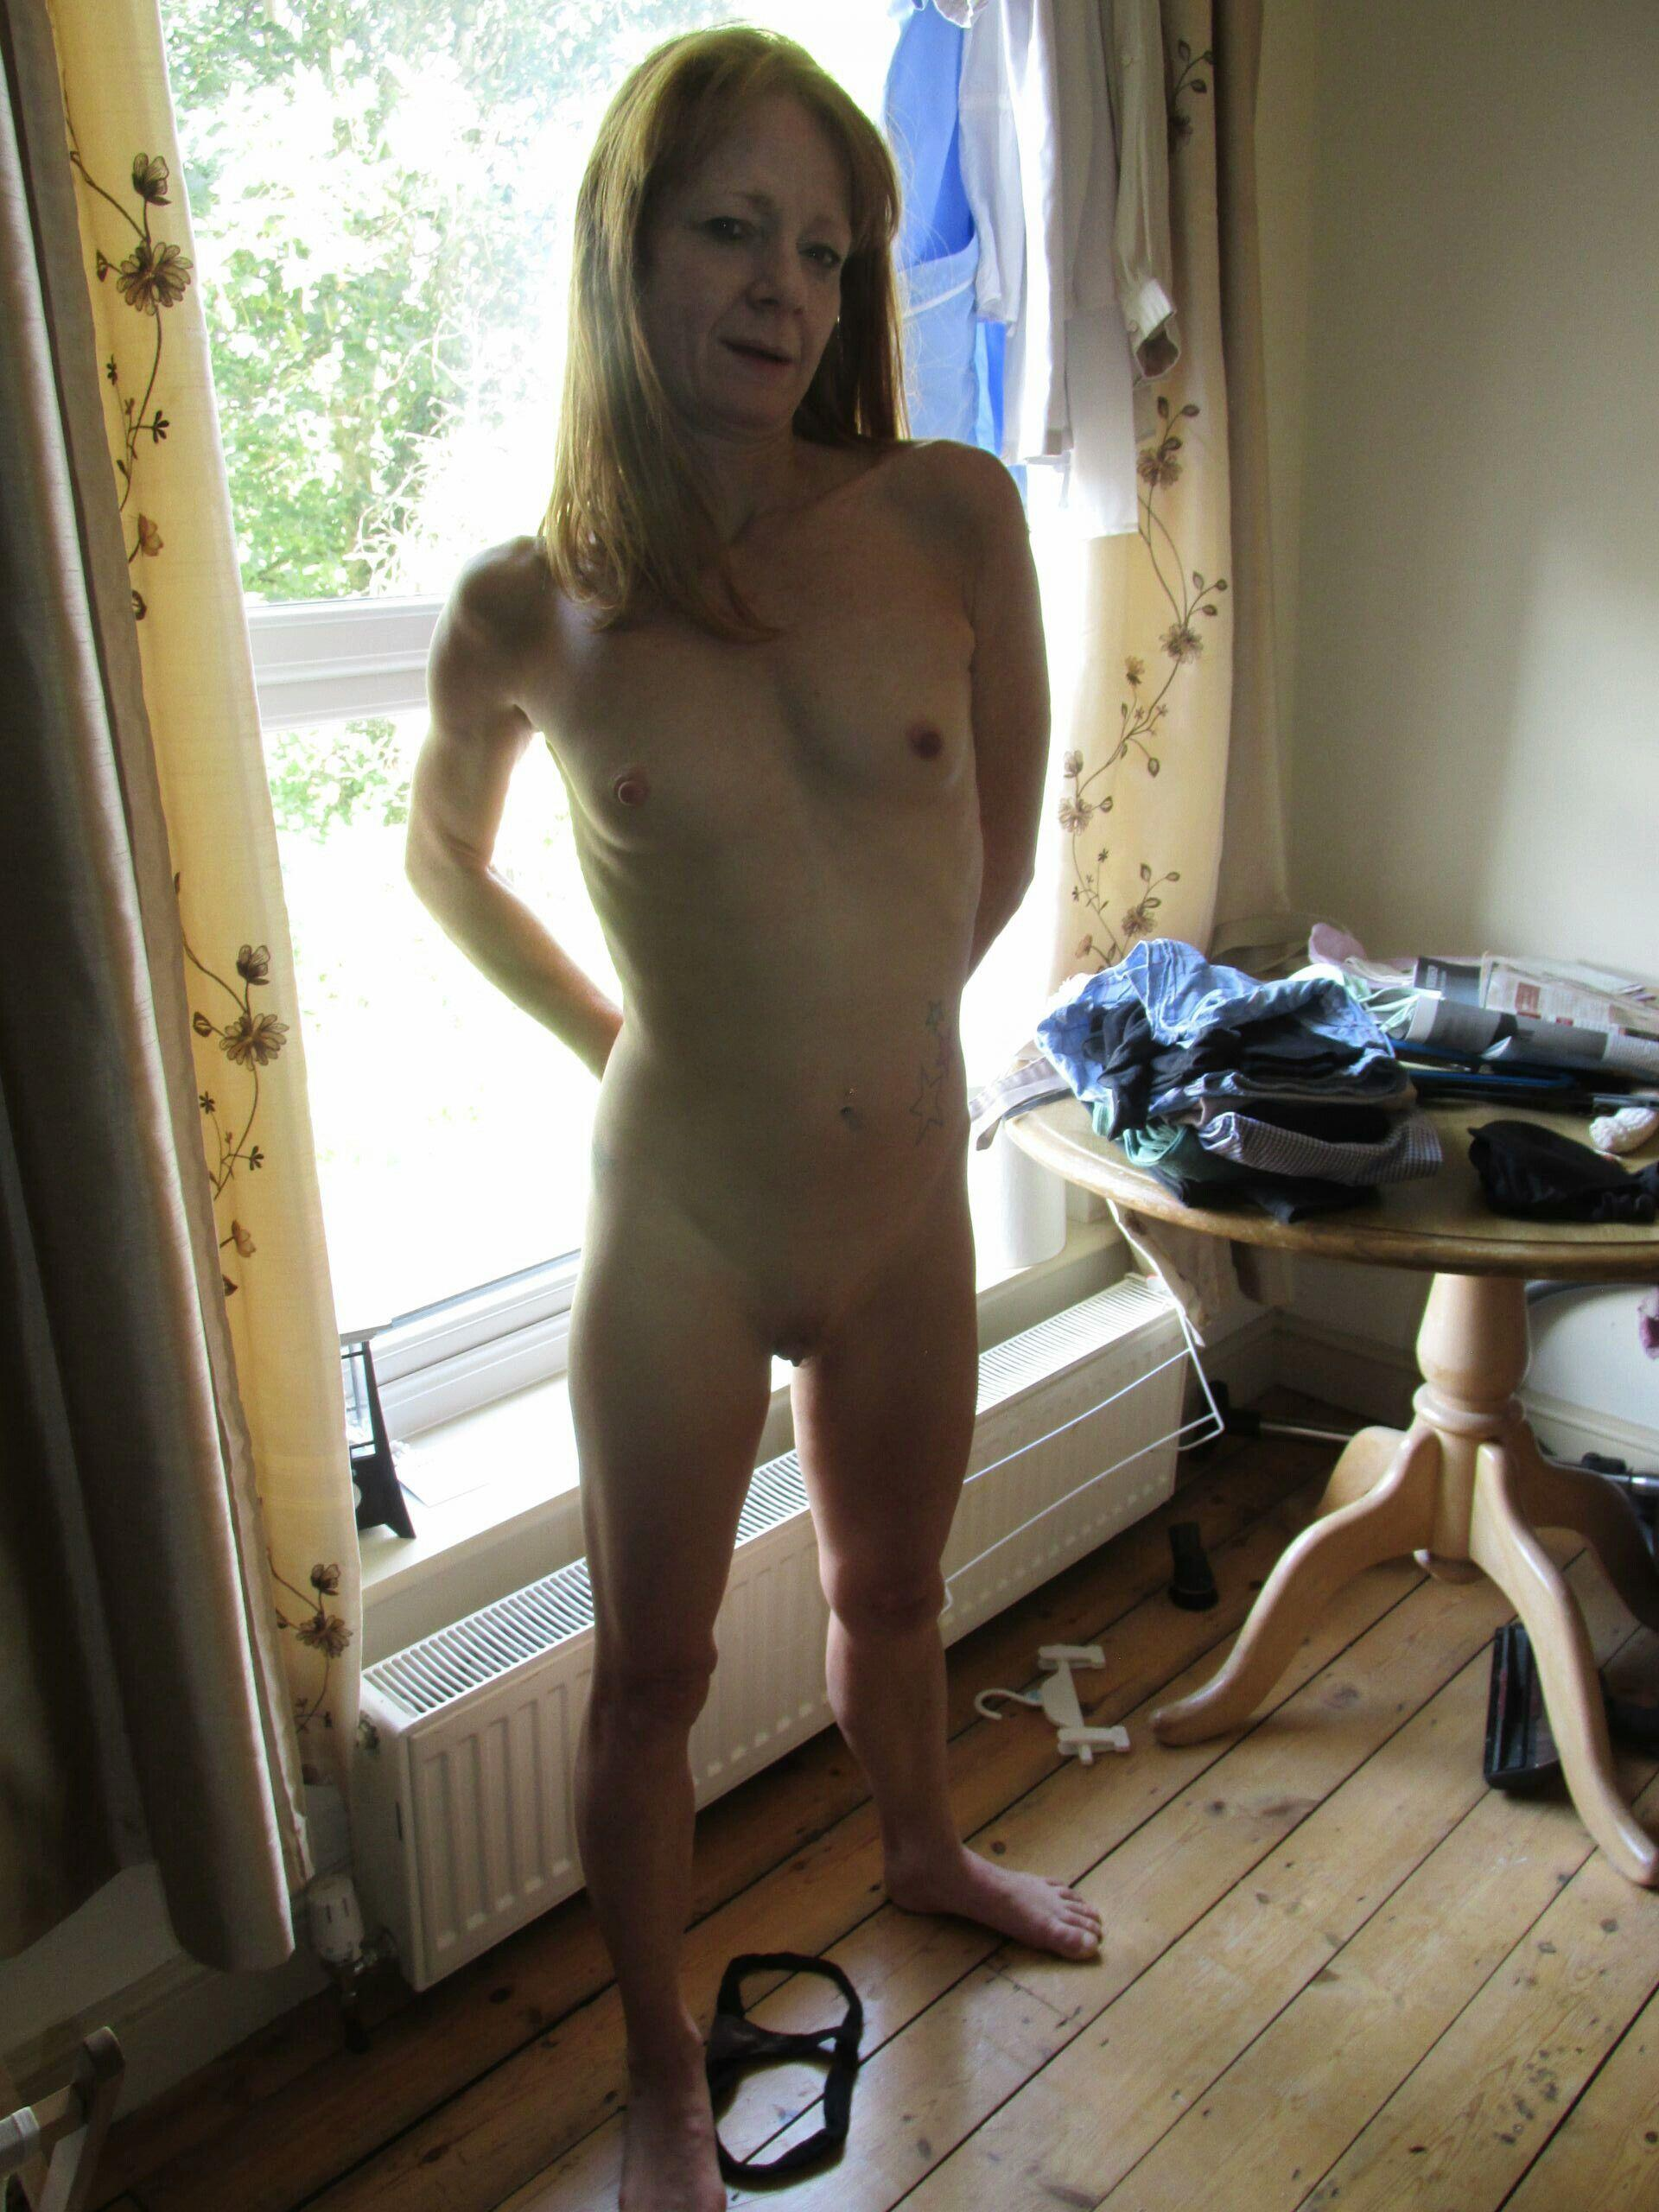 Real Amateurs Mature Flashing Pics Hotwife Pics